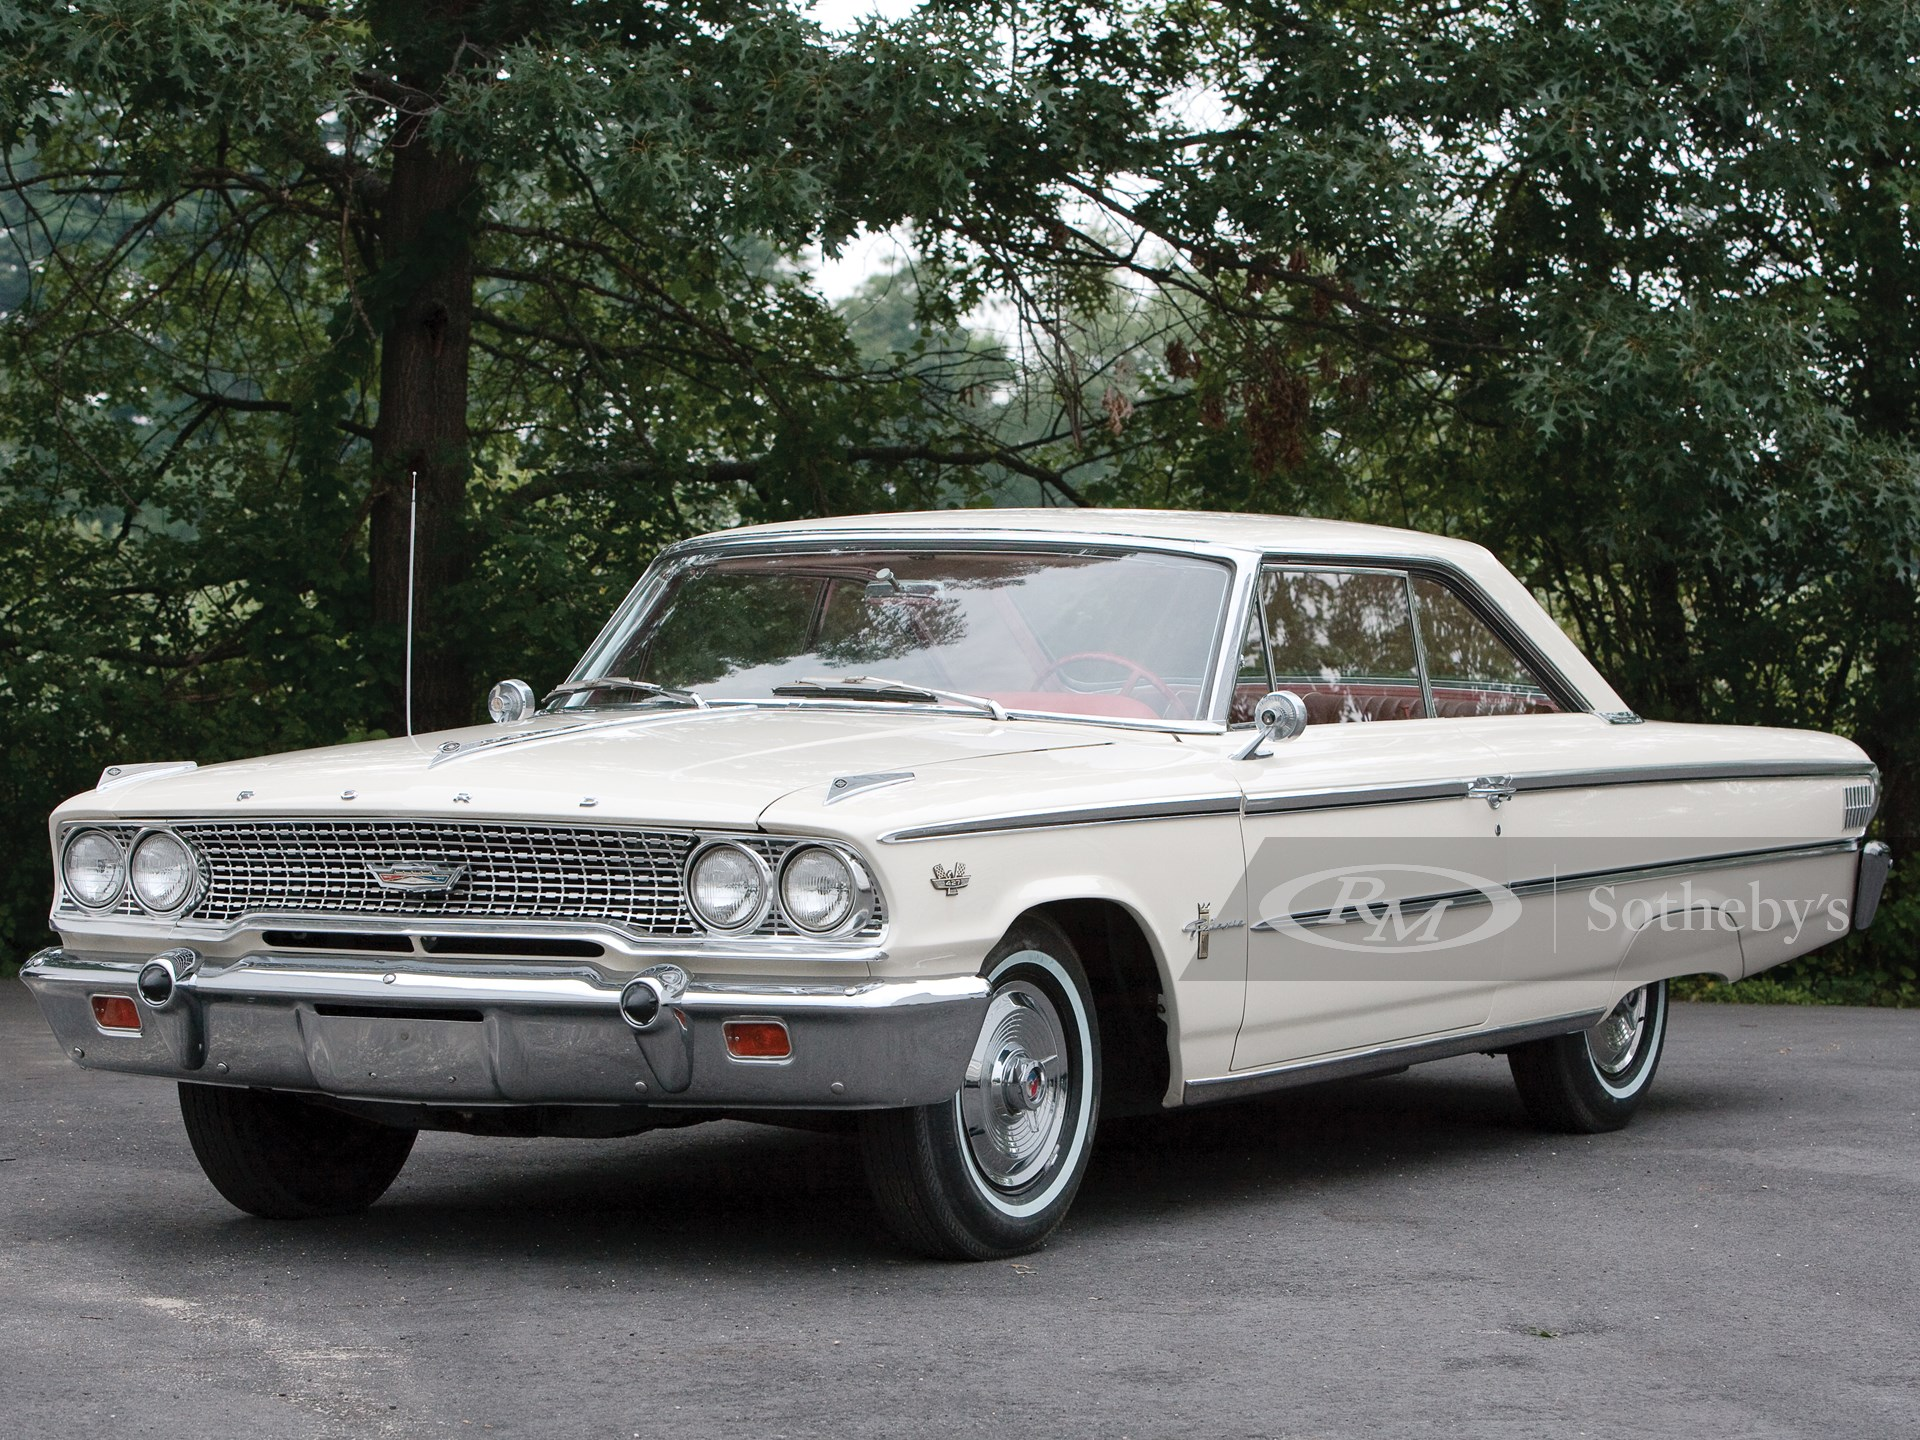 ©2009 Chip Riegel, all rights reserved; 1963-1/2 Ford Galaxy 427; Tewksbury MA; August 5 2009; photographed for Bonhams Brookline Auction